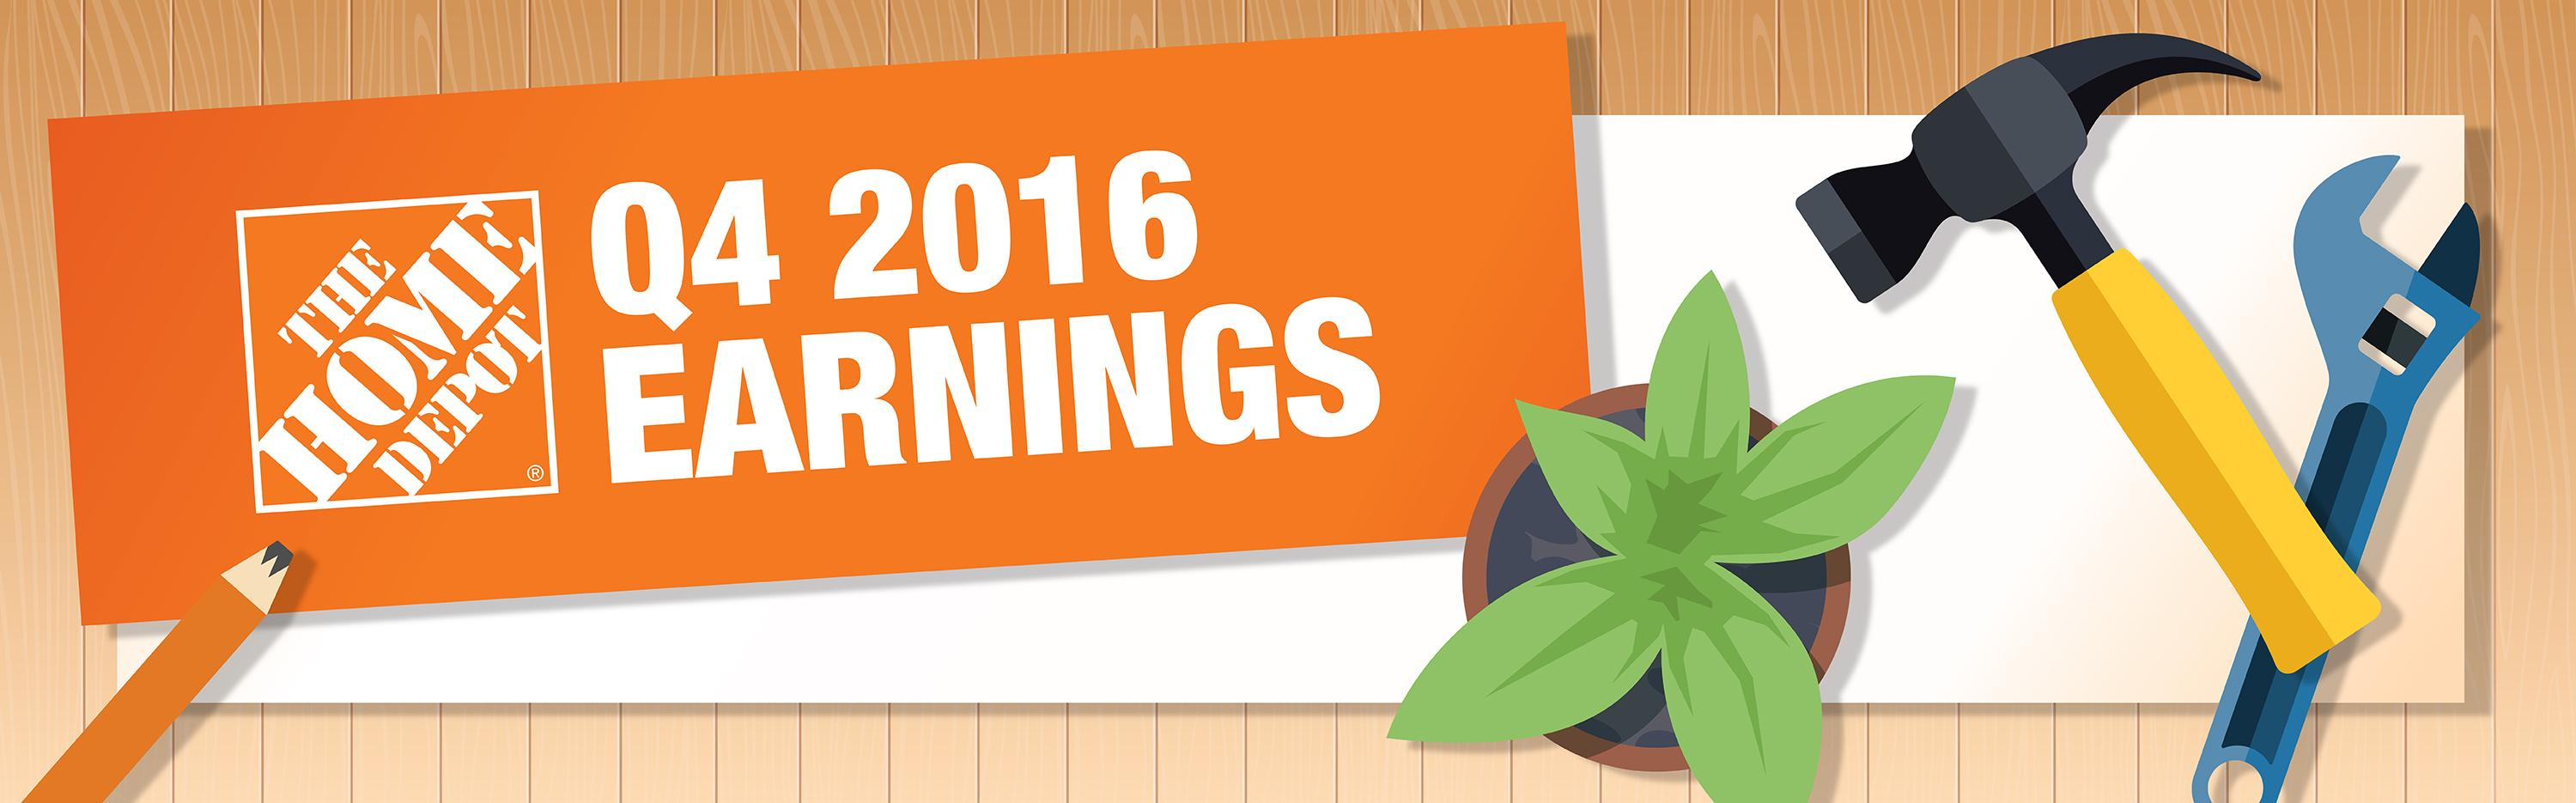 Fourth Quarter 2016 Earnings Announcement